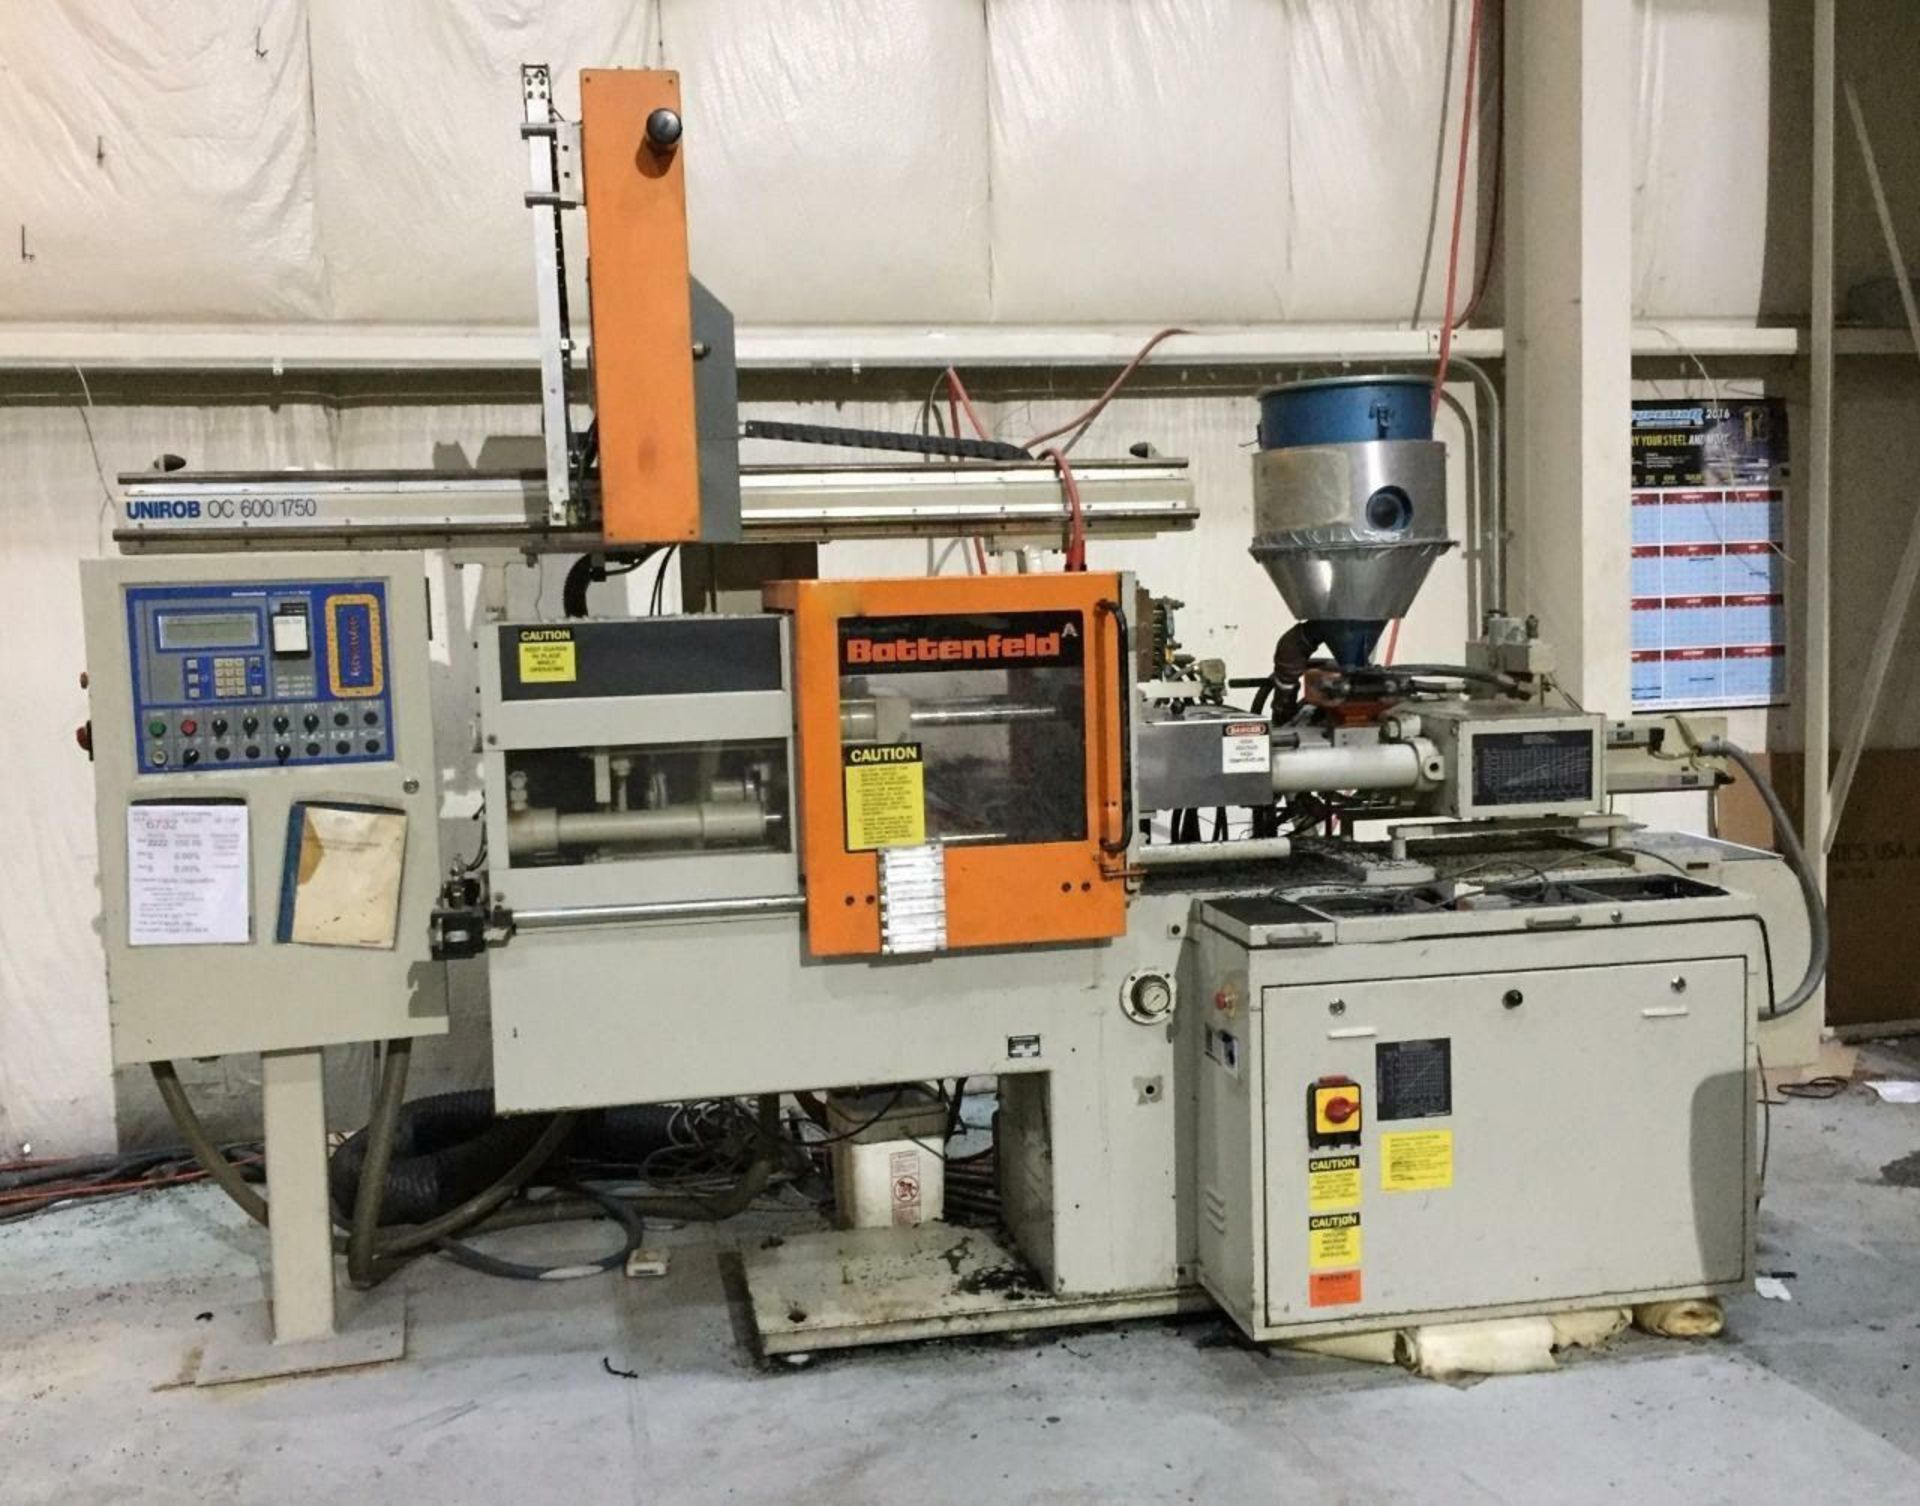 Lot 303E - (1987) BATTENFELD 22 TON INJECTION MOLDING MACHINE (MACHINE LOCATED AT DIFFERENT LOCATION) OC, 600/